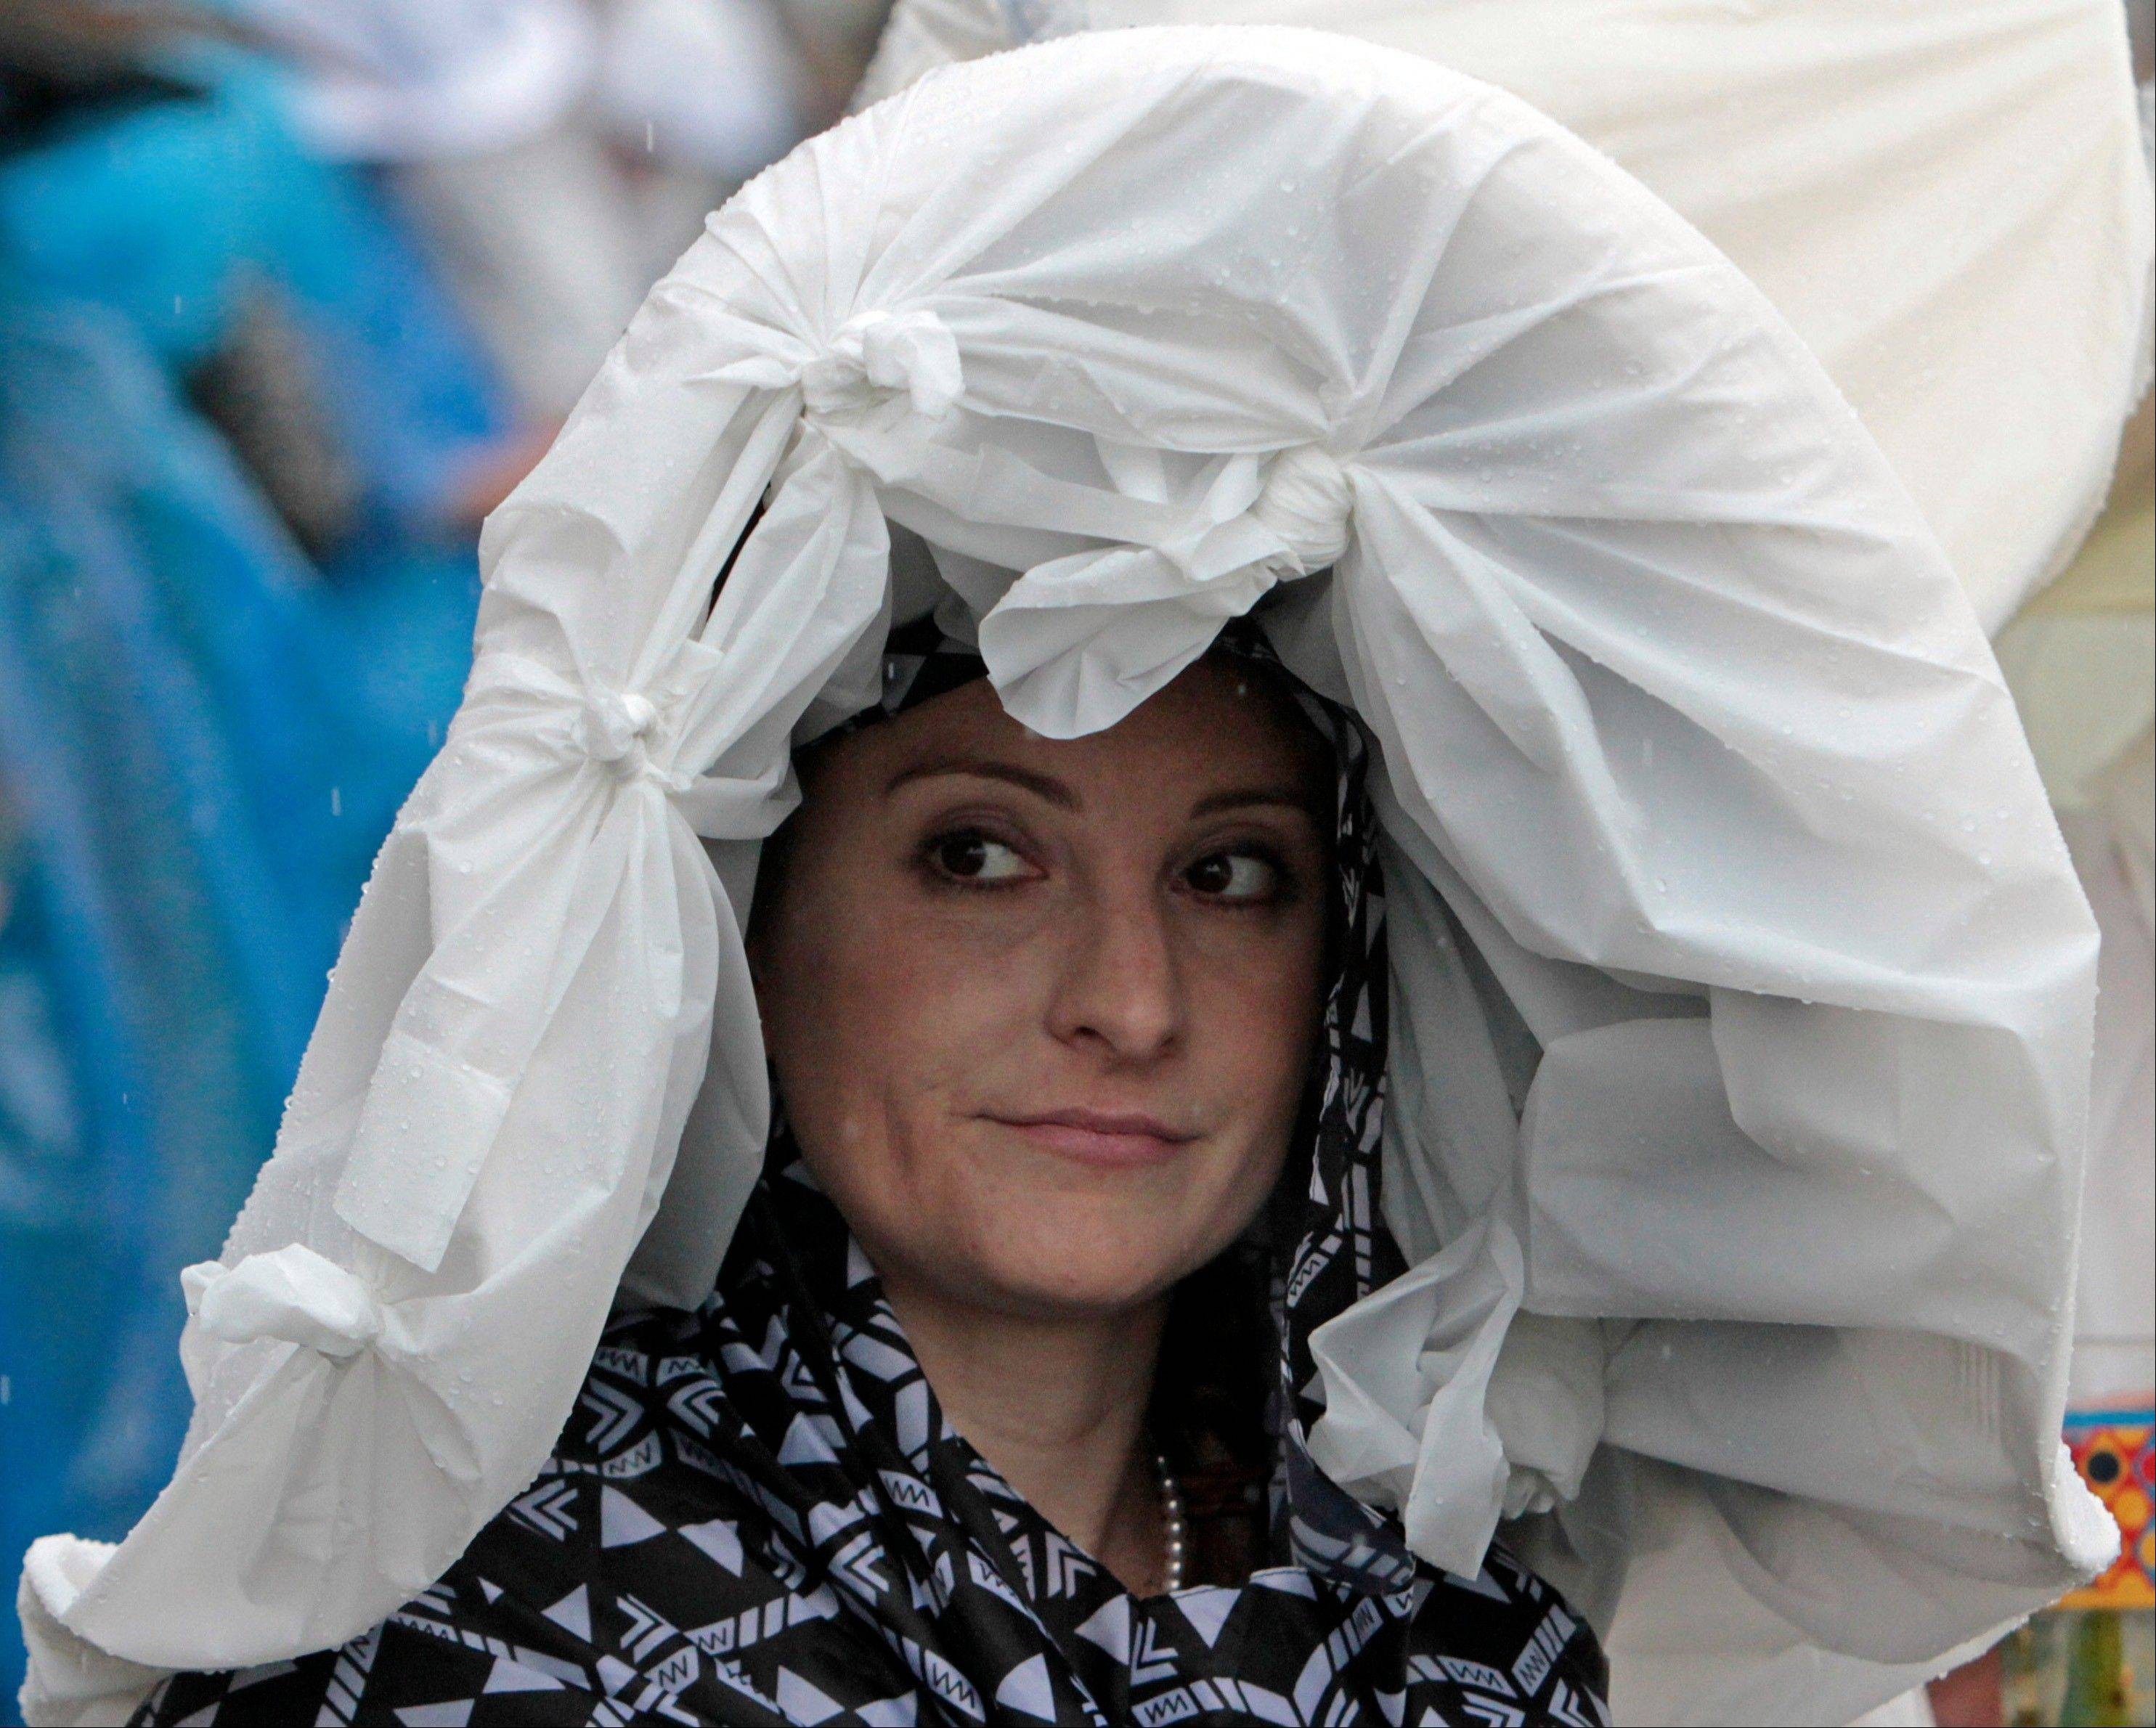 Jennifer Parod, Tucson, Az., looks out from her plastic covered hat before the 139th Kentucky Derby.